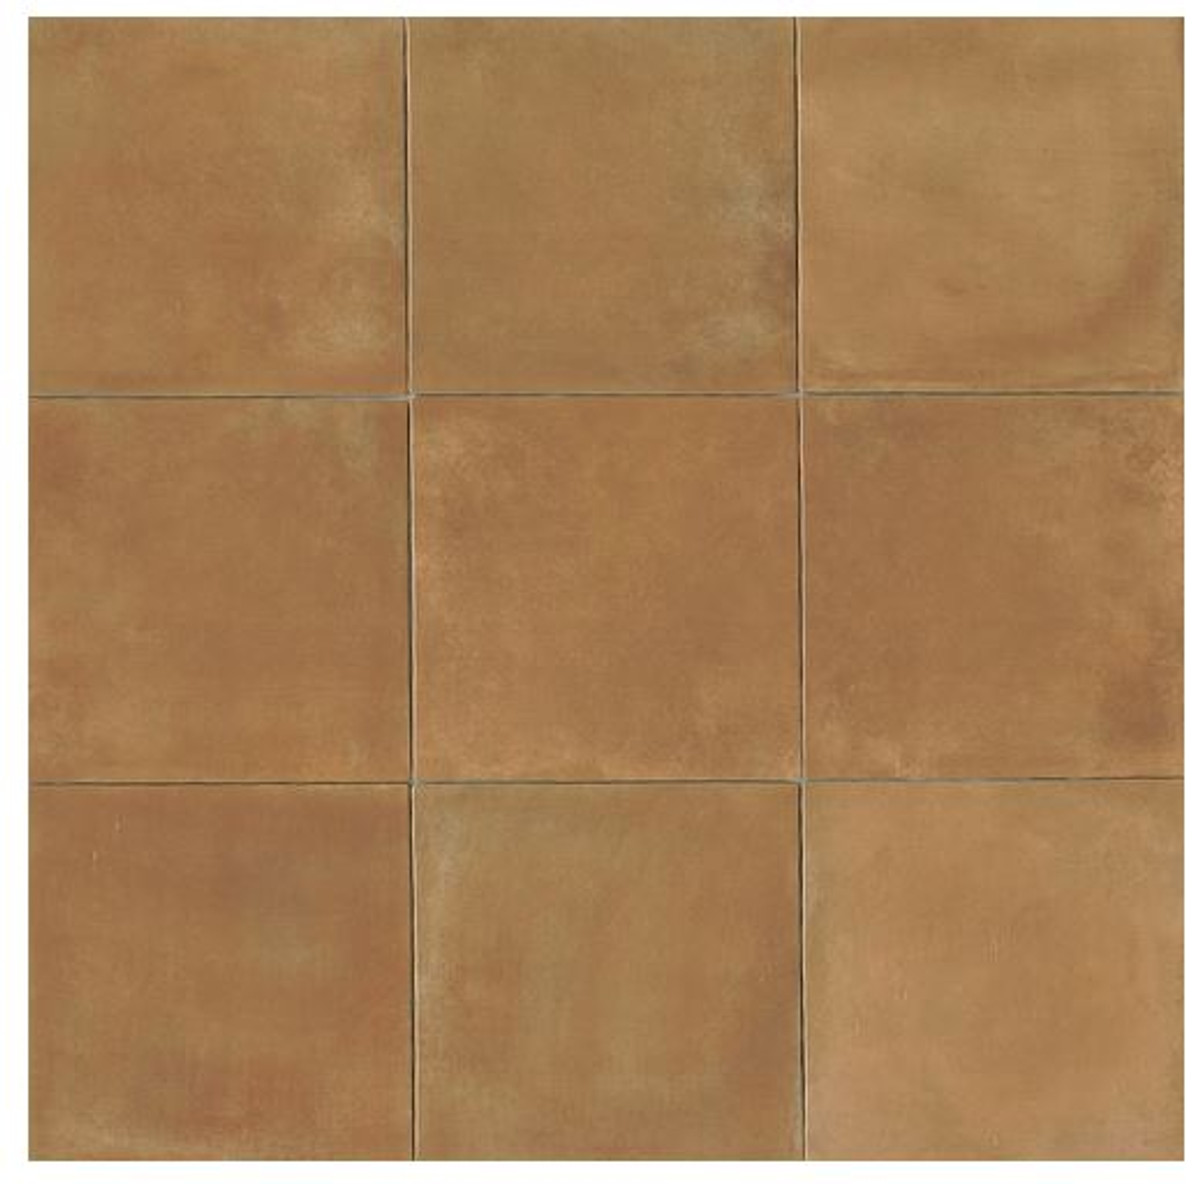 Terra Cotta Porcelain Tile 14x14 Gloss Finish Cotto Field Tile Siena ( Caramel )